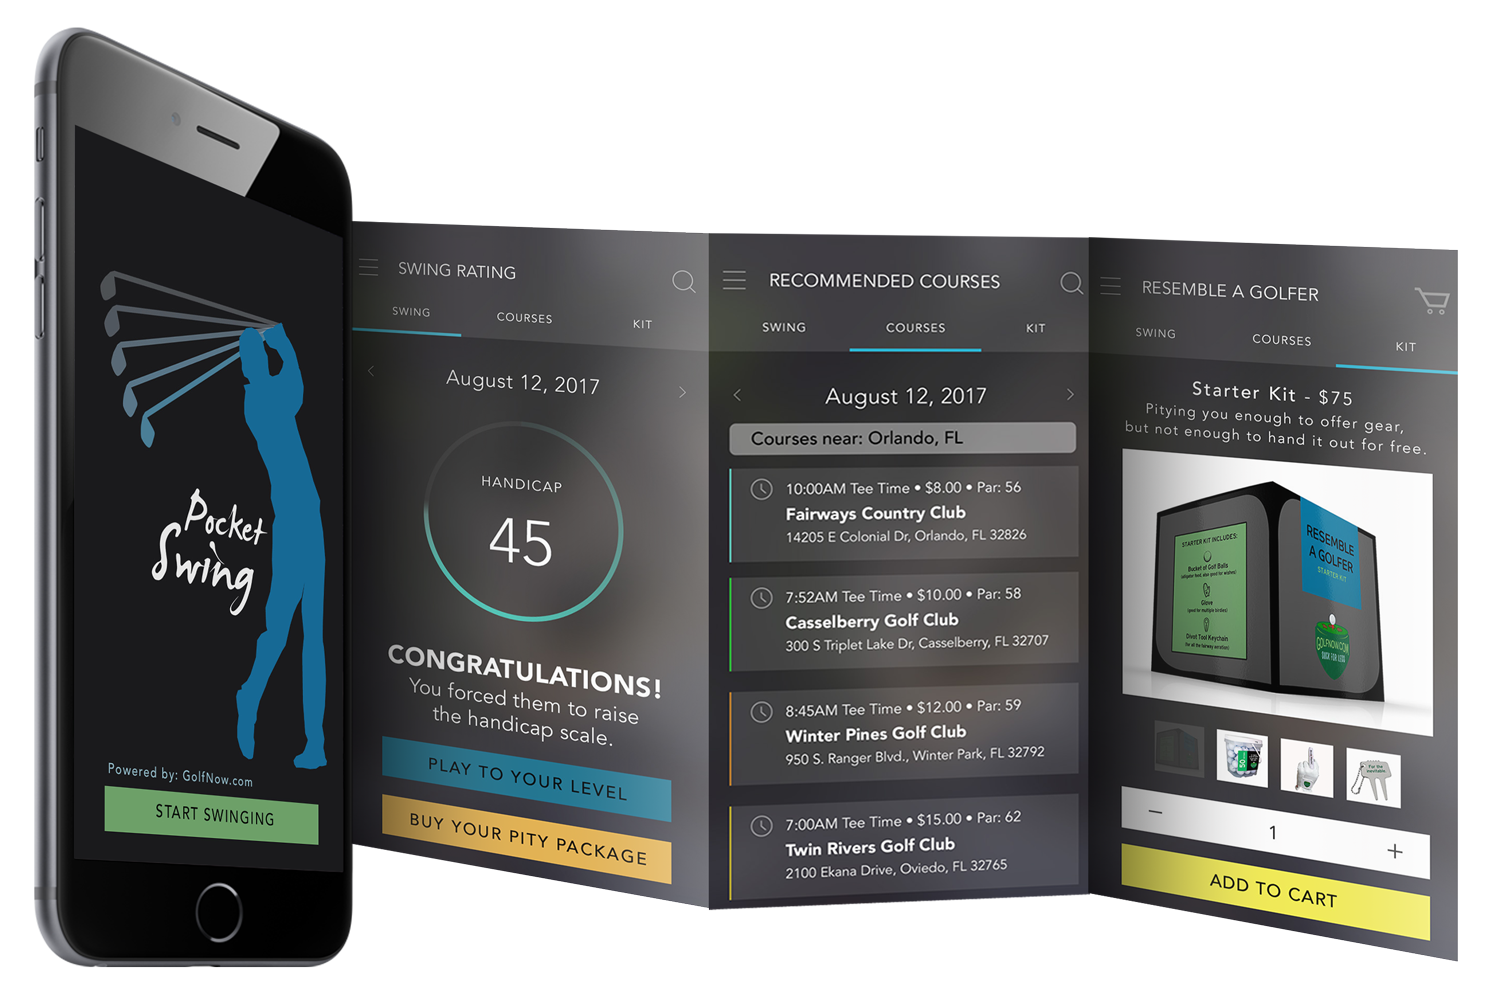 golfnow-app-showcase-web.png